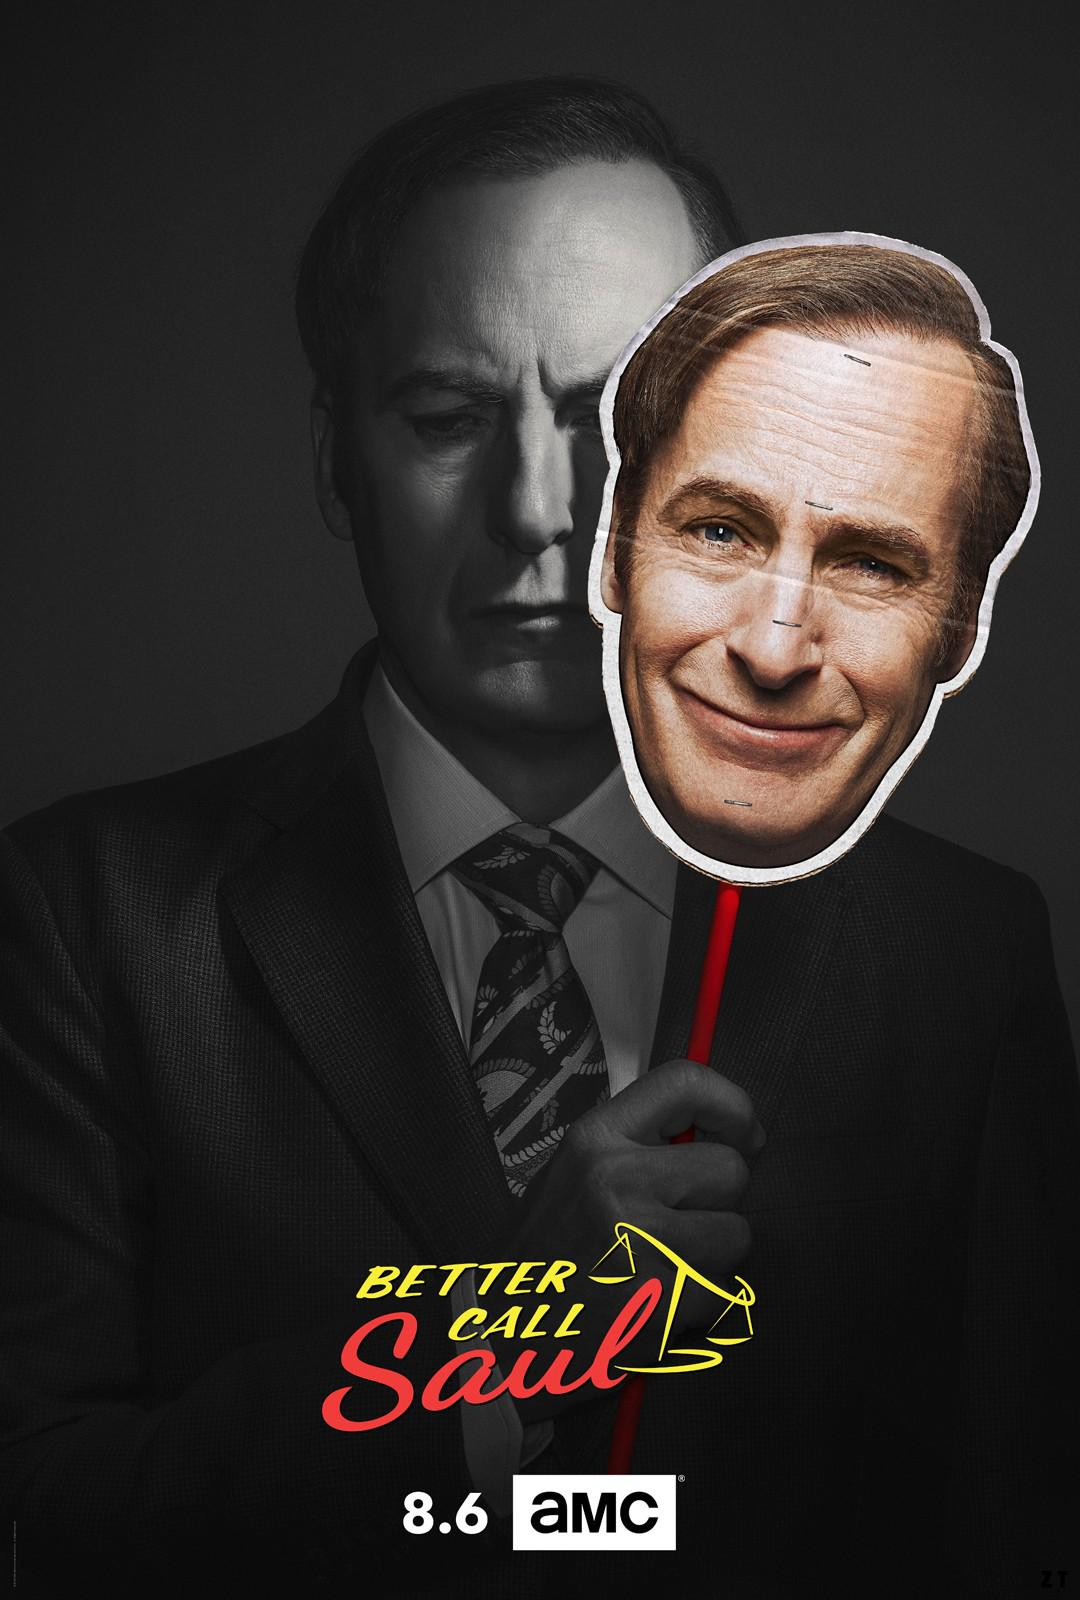 Telecharger Better Call Saul- Saison 4  [03/??] FRENCH | Qualité HD 720p